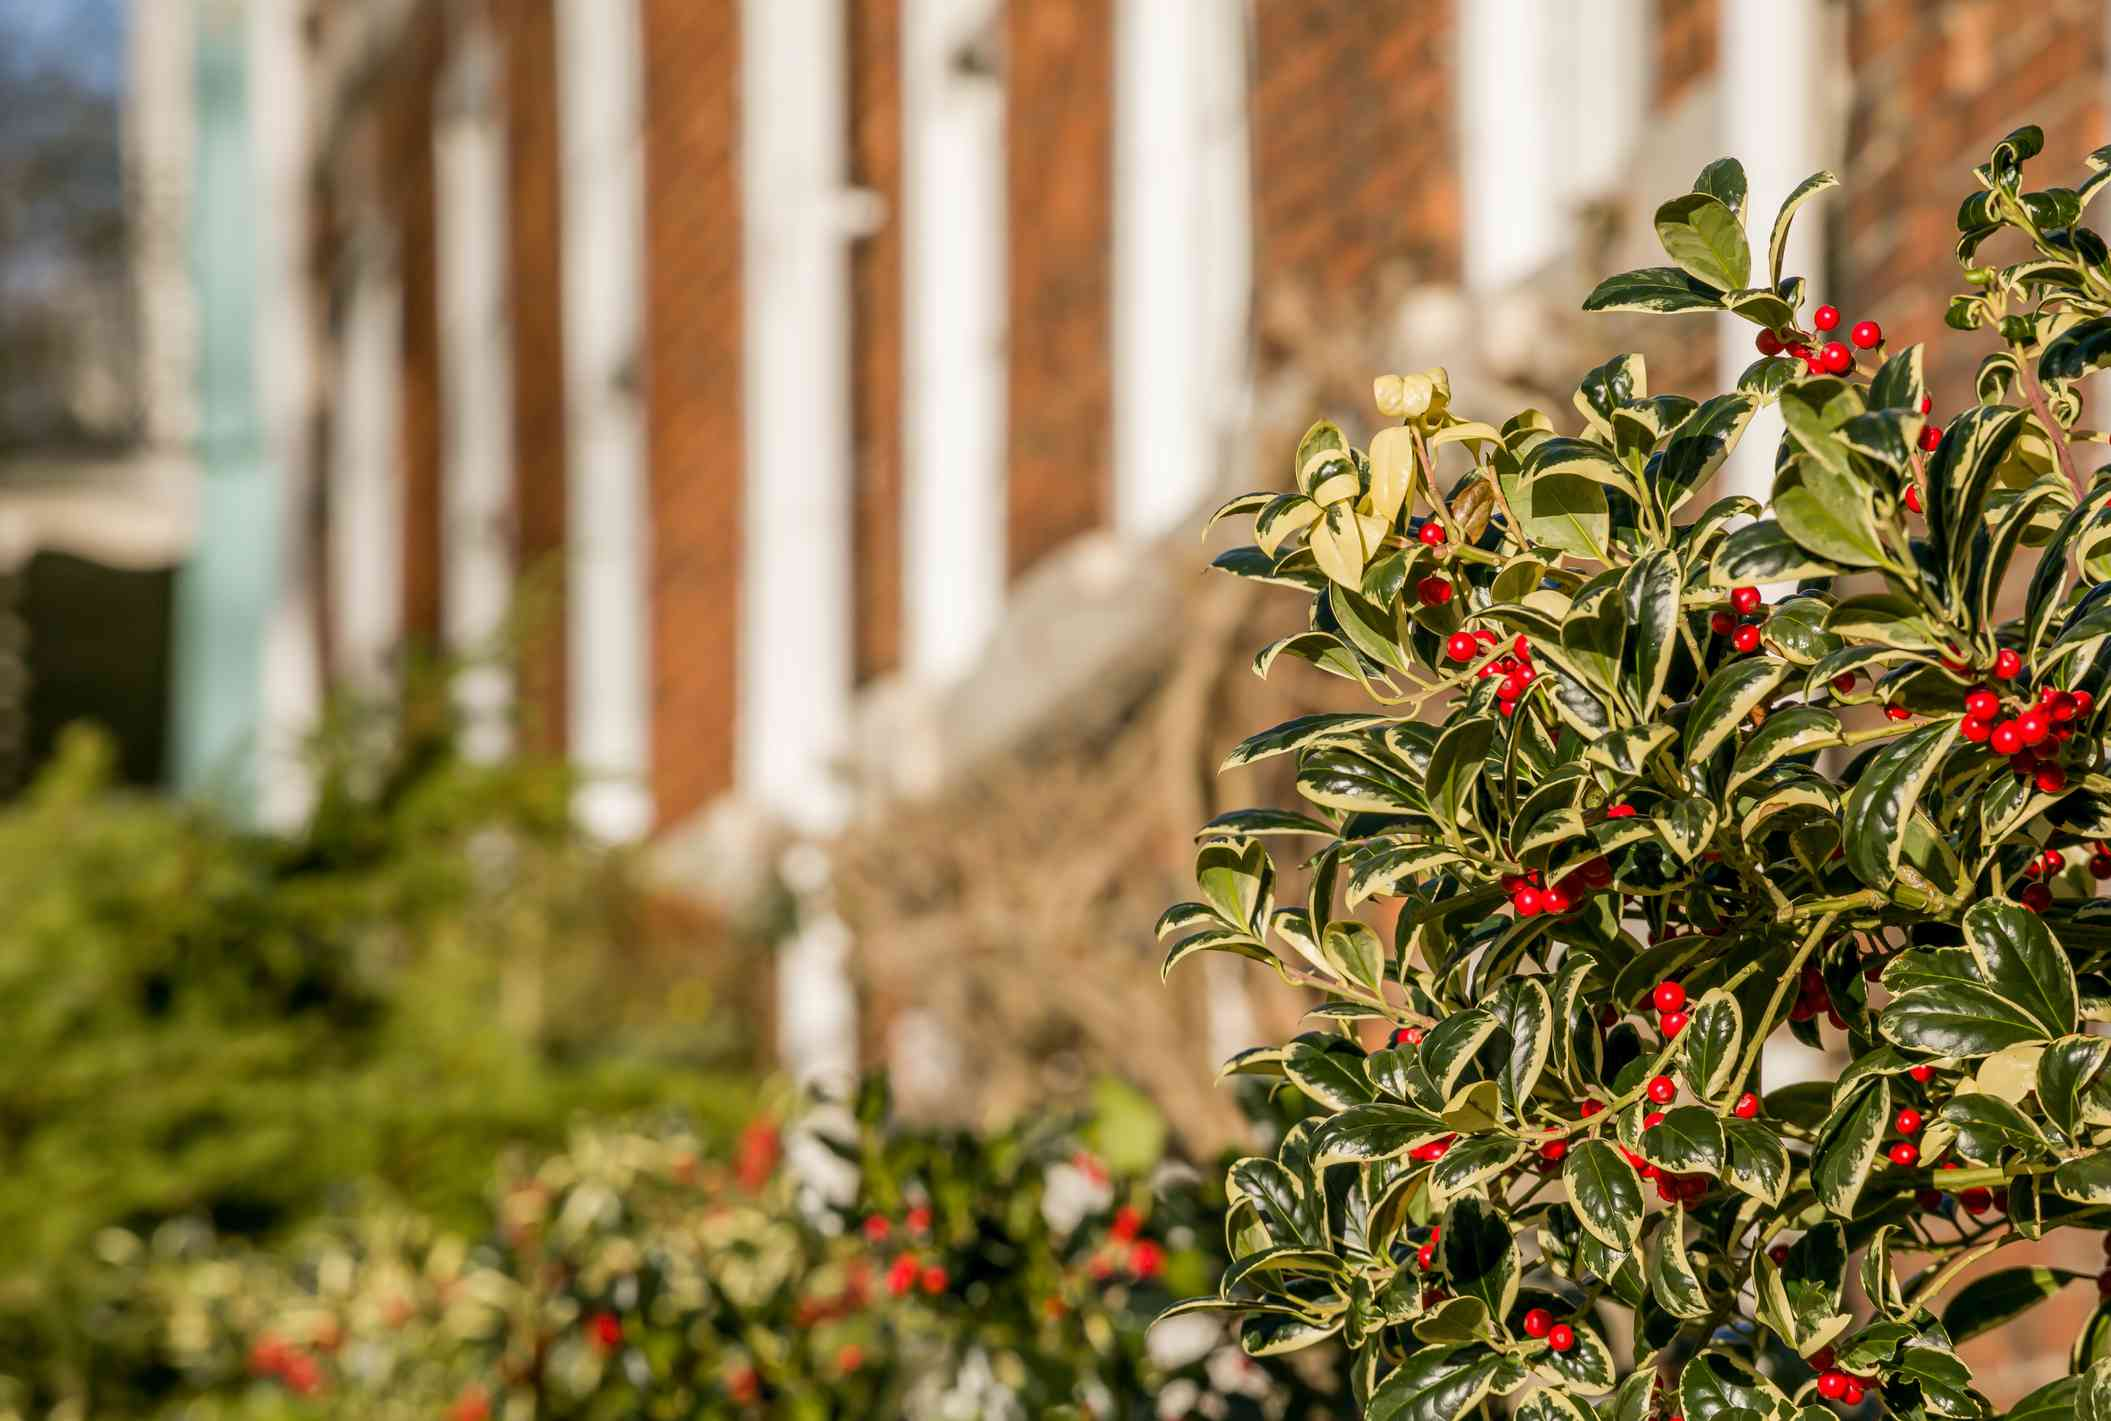 A holly bush on the side of a building